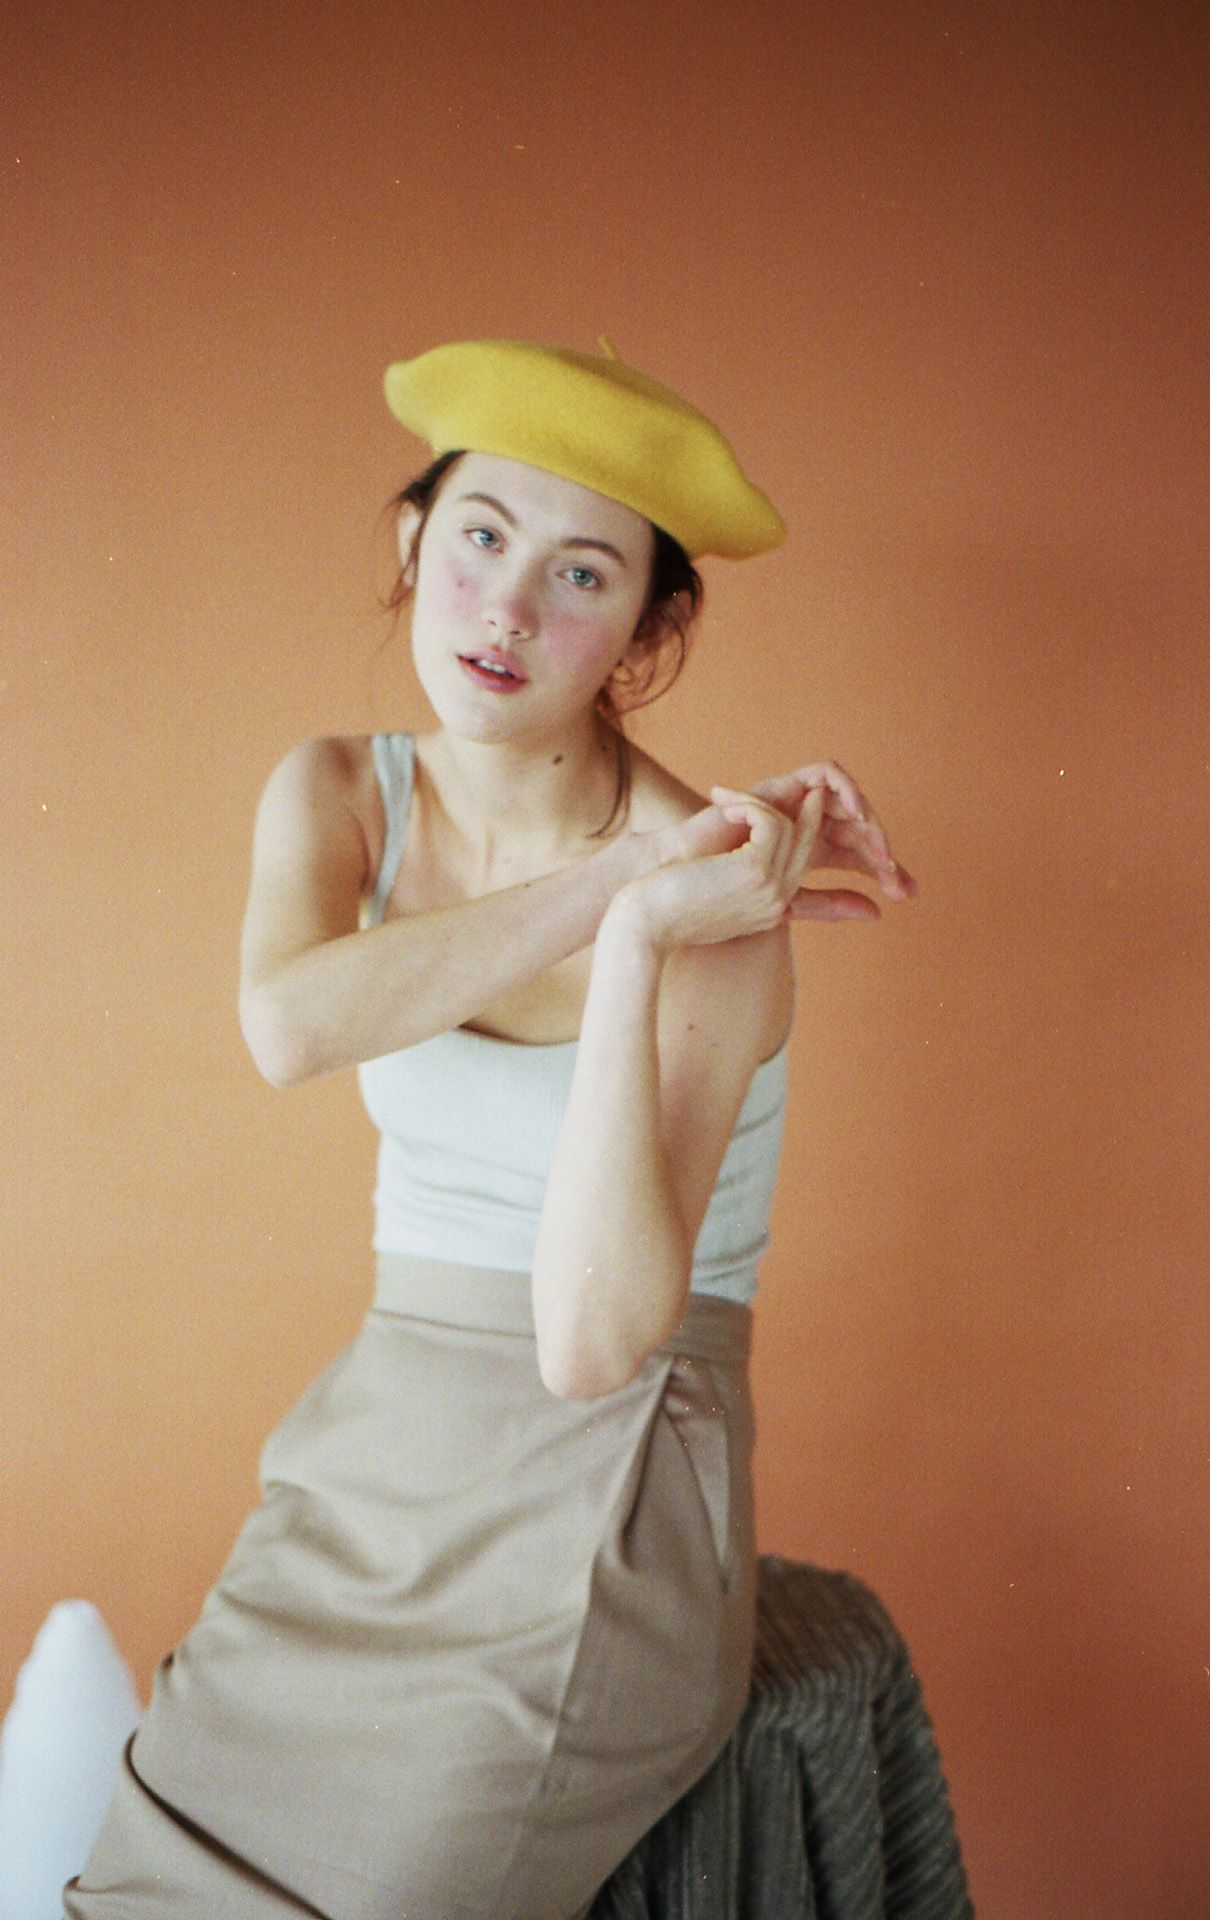 female model Jana sitting on stool wearing beige tight skirt white tank top and yellow beret looking at camera photographed by Naomie from Studio TB for project Sculpting Jana